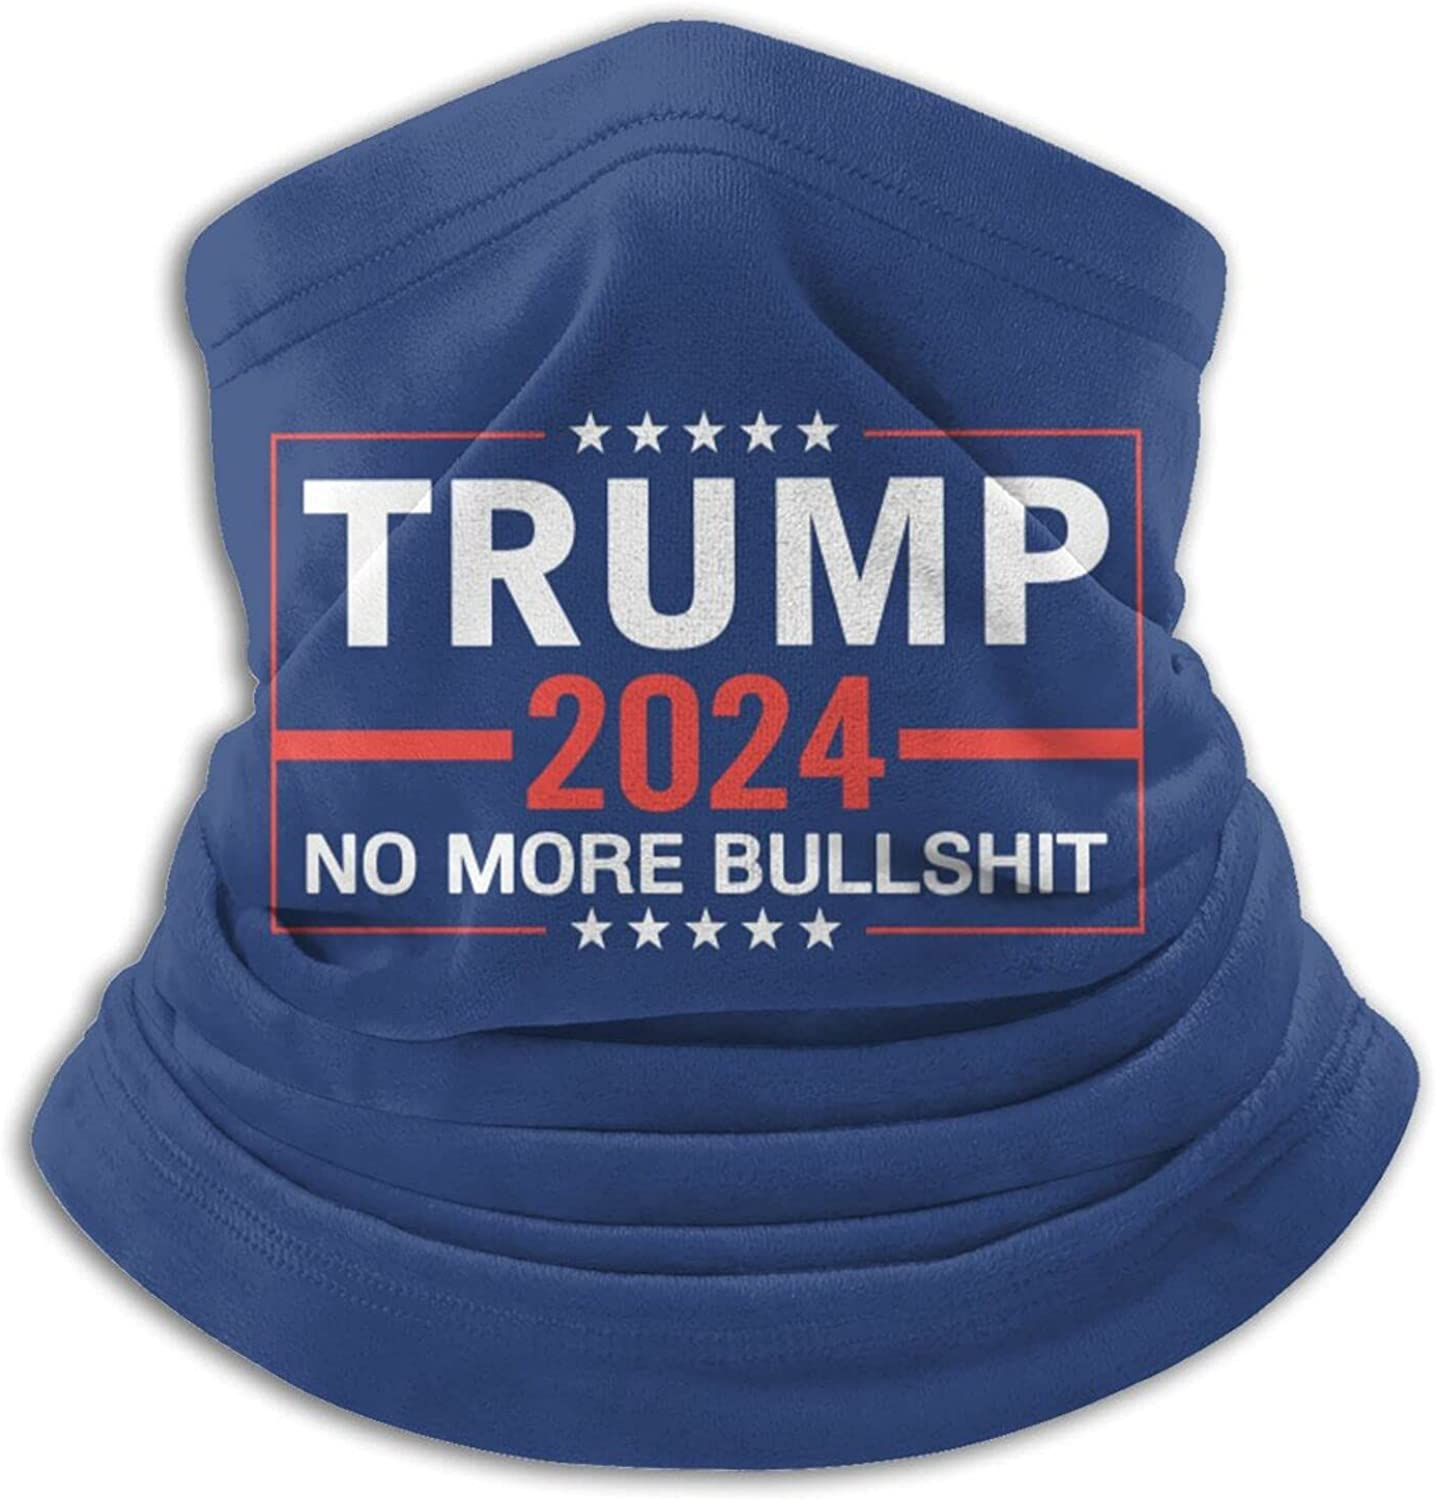 Trump 2024 unisex winter neck gaiter face cover mask, windproof balaclava scarf for fishing, running & hiking